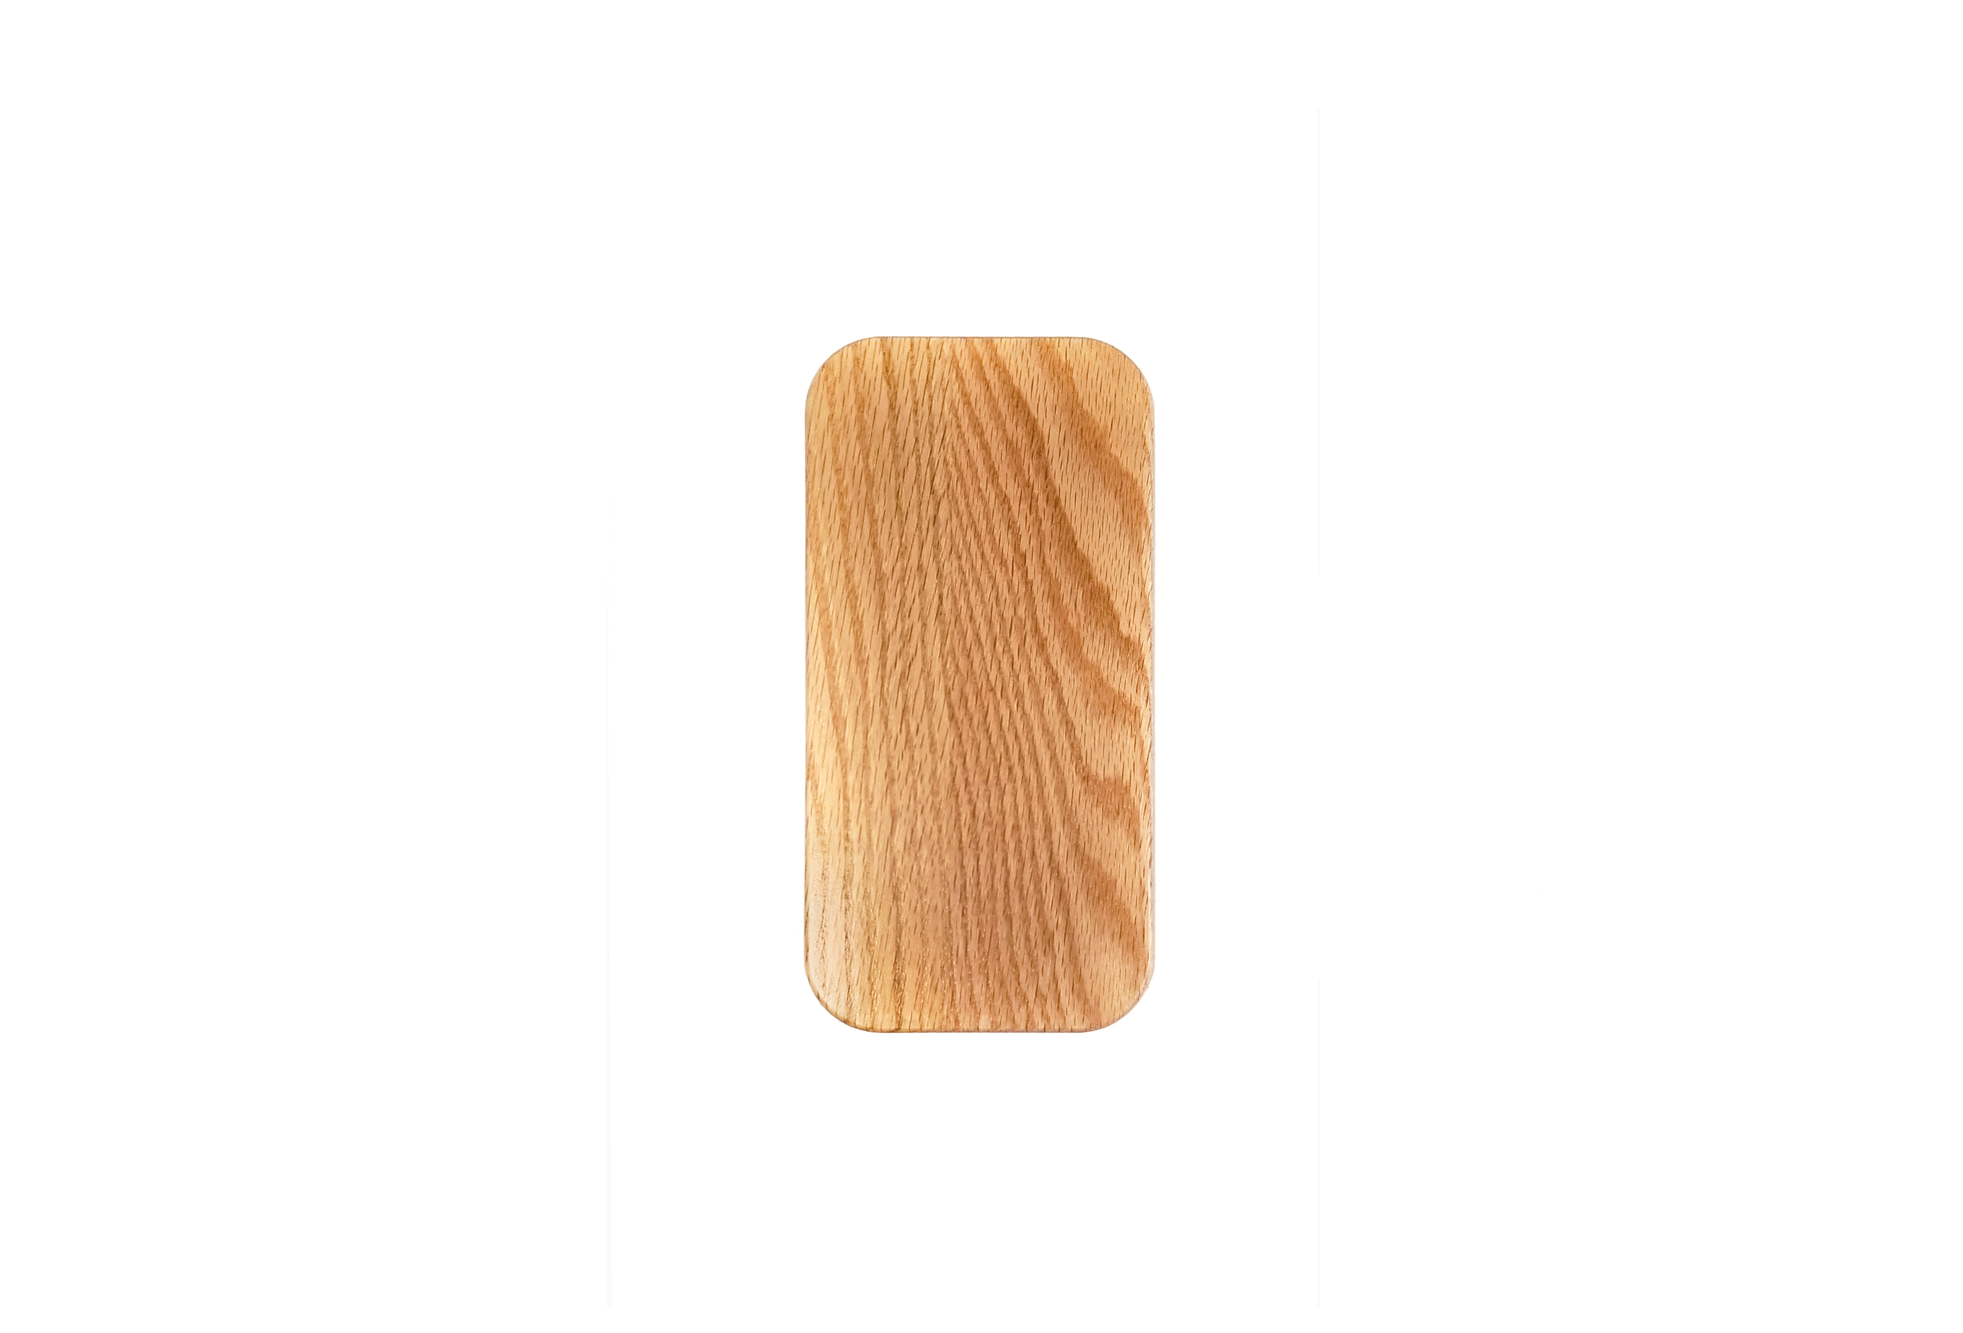 Red Oak Check presenter with metail clip